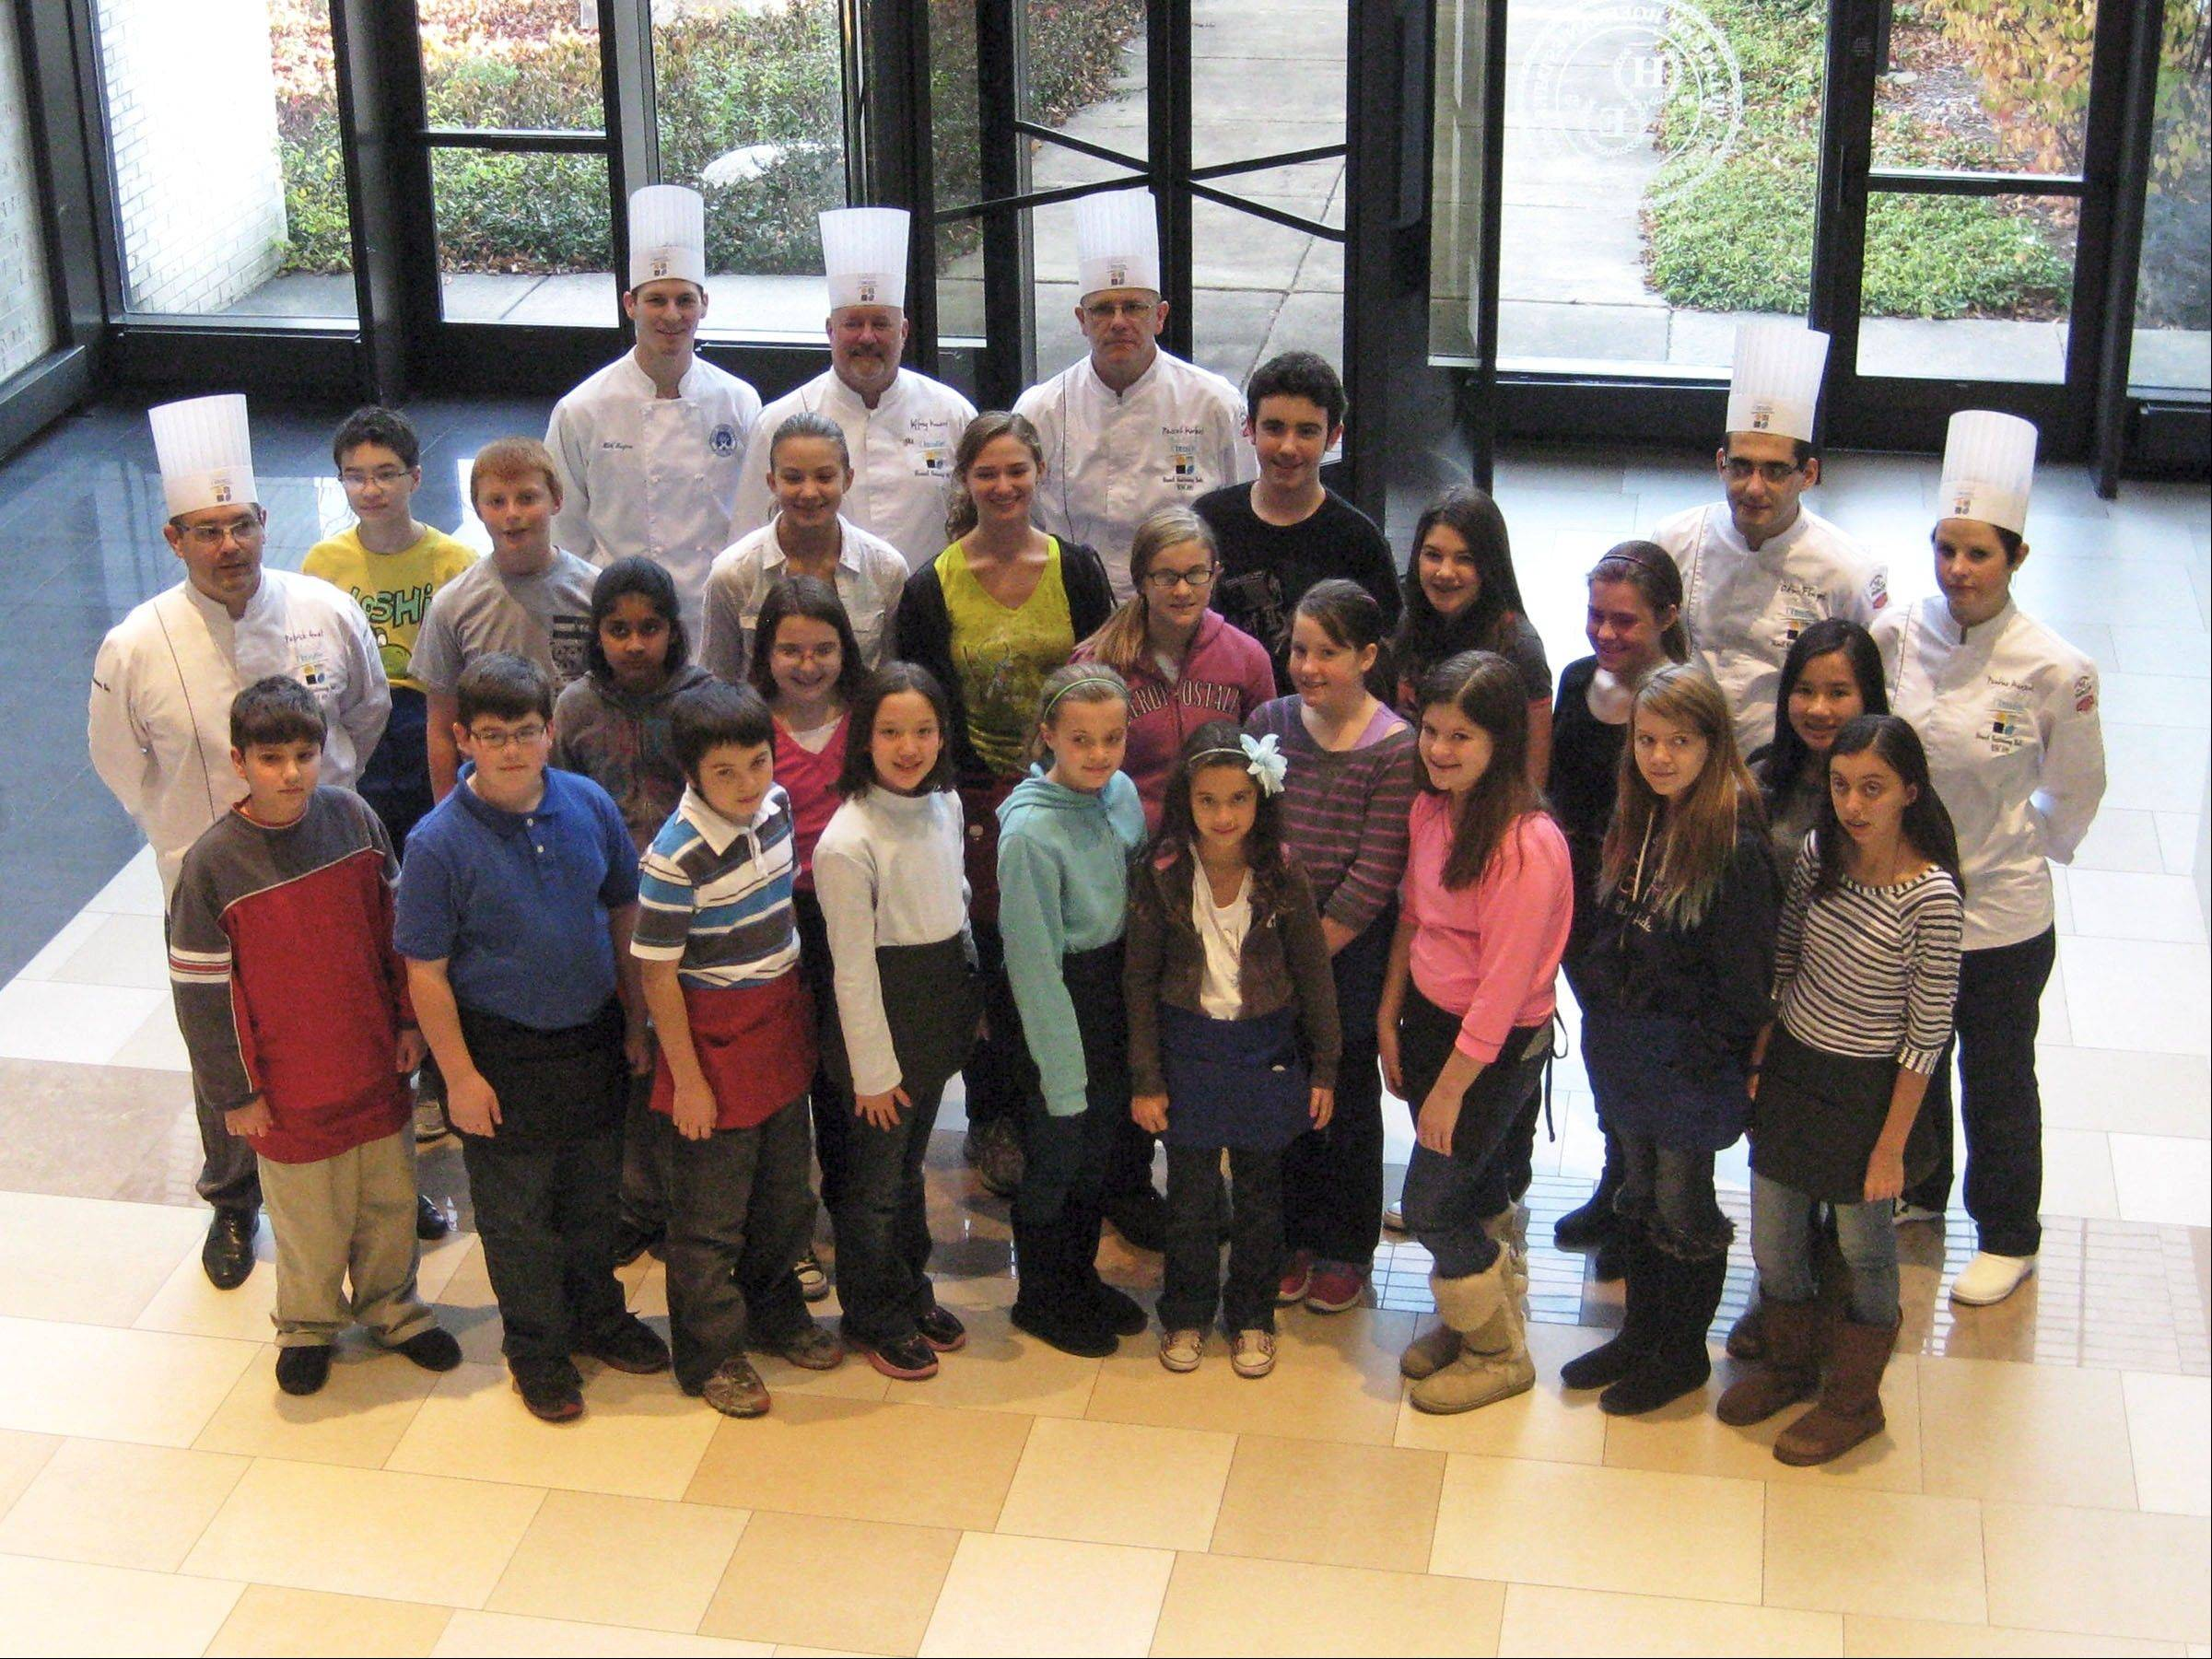 Chef Patrick Guat, left, and his culinary students pose with last year's children's cooking class at the Village Hall.